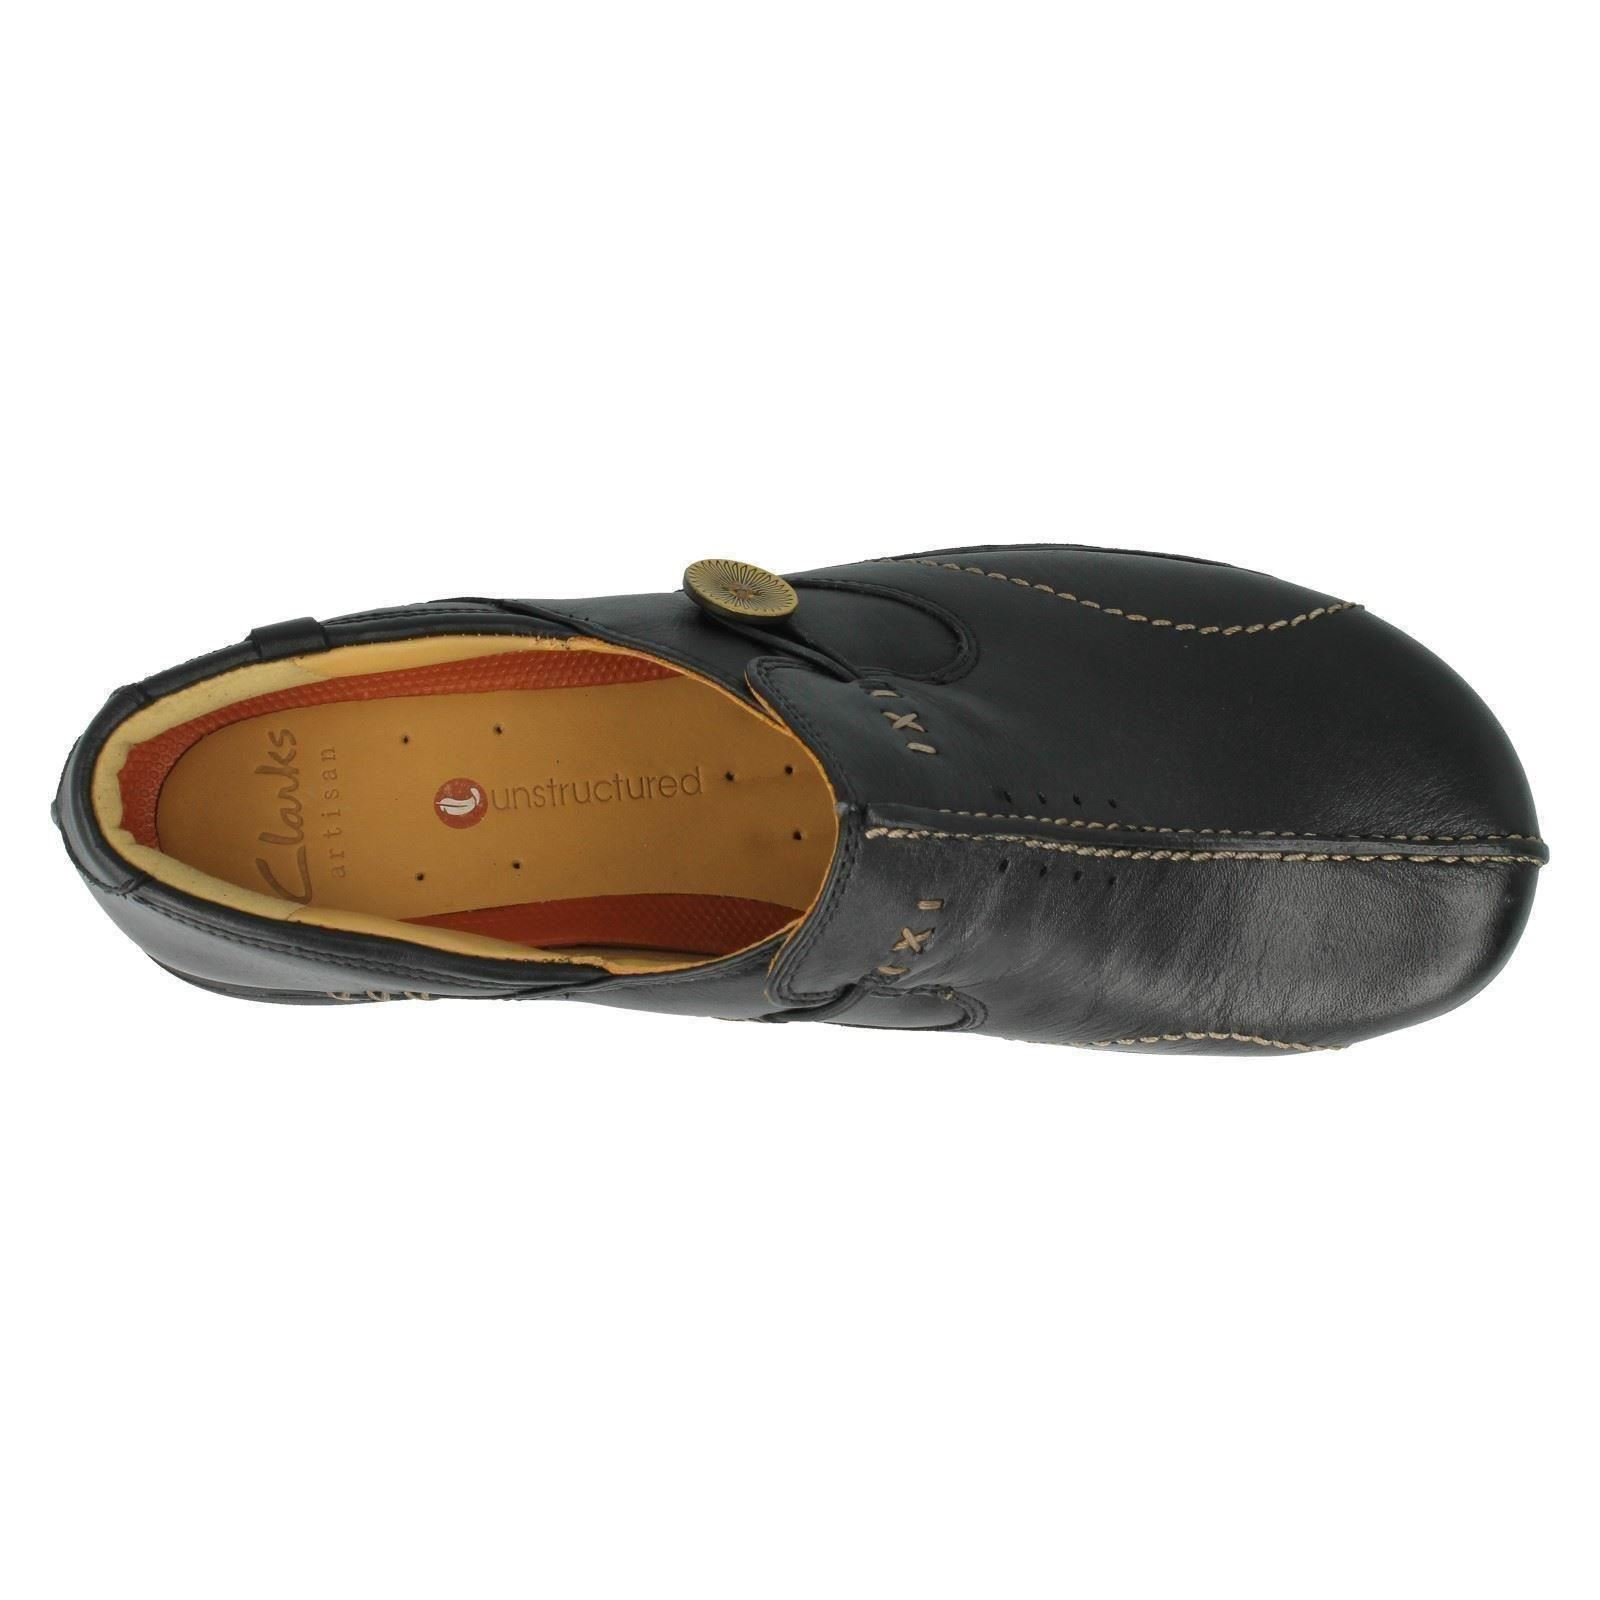 Clarks Slip On Casual Shoes For Women